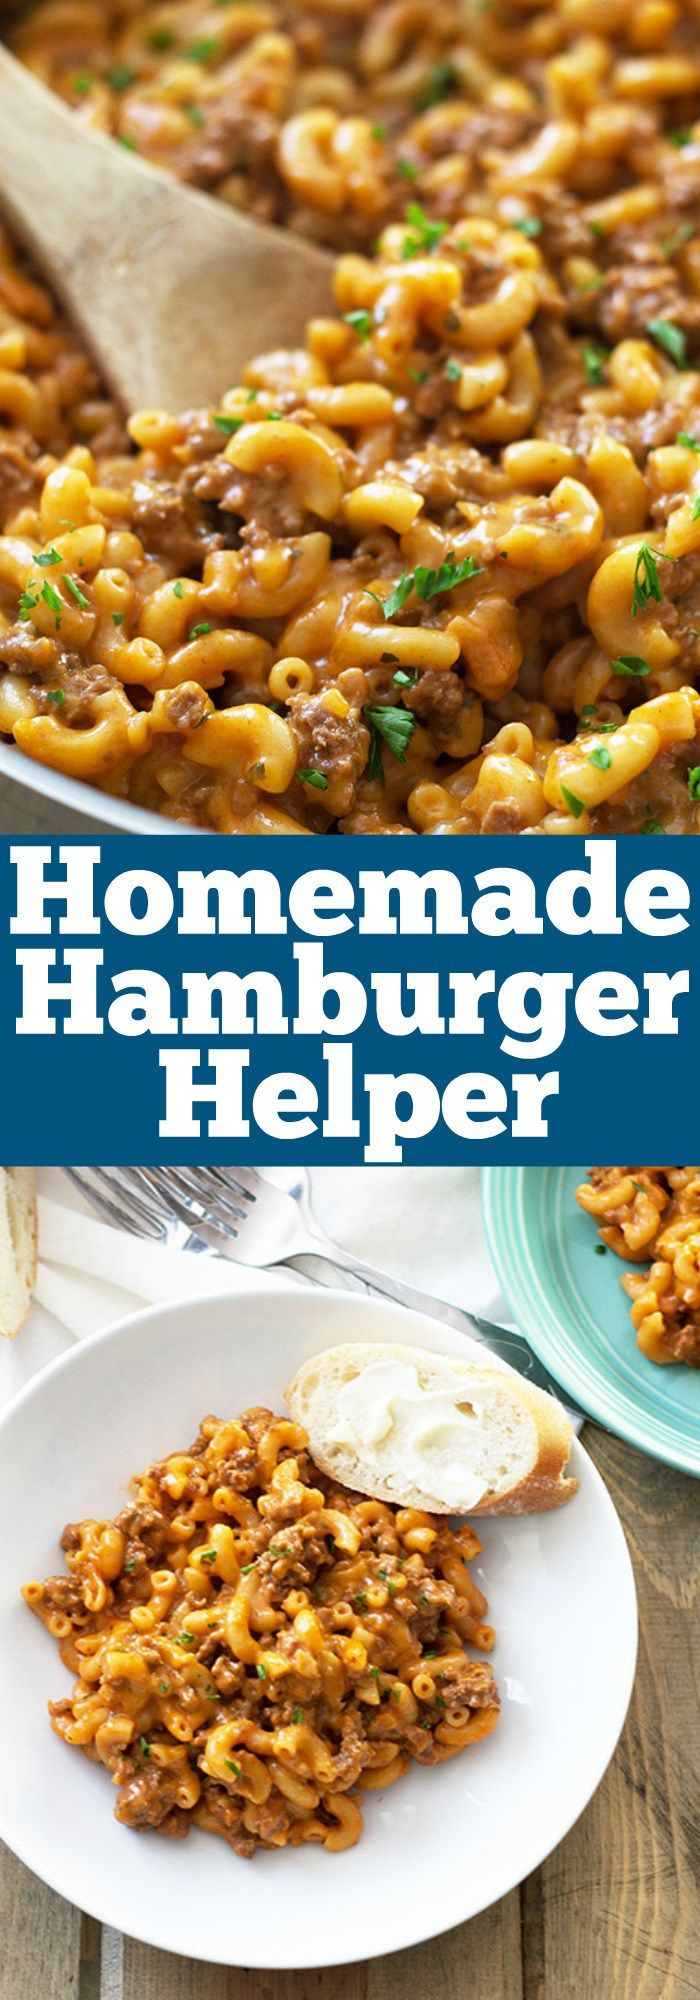 Easy pasta and hamburger recipes